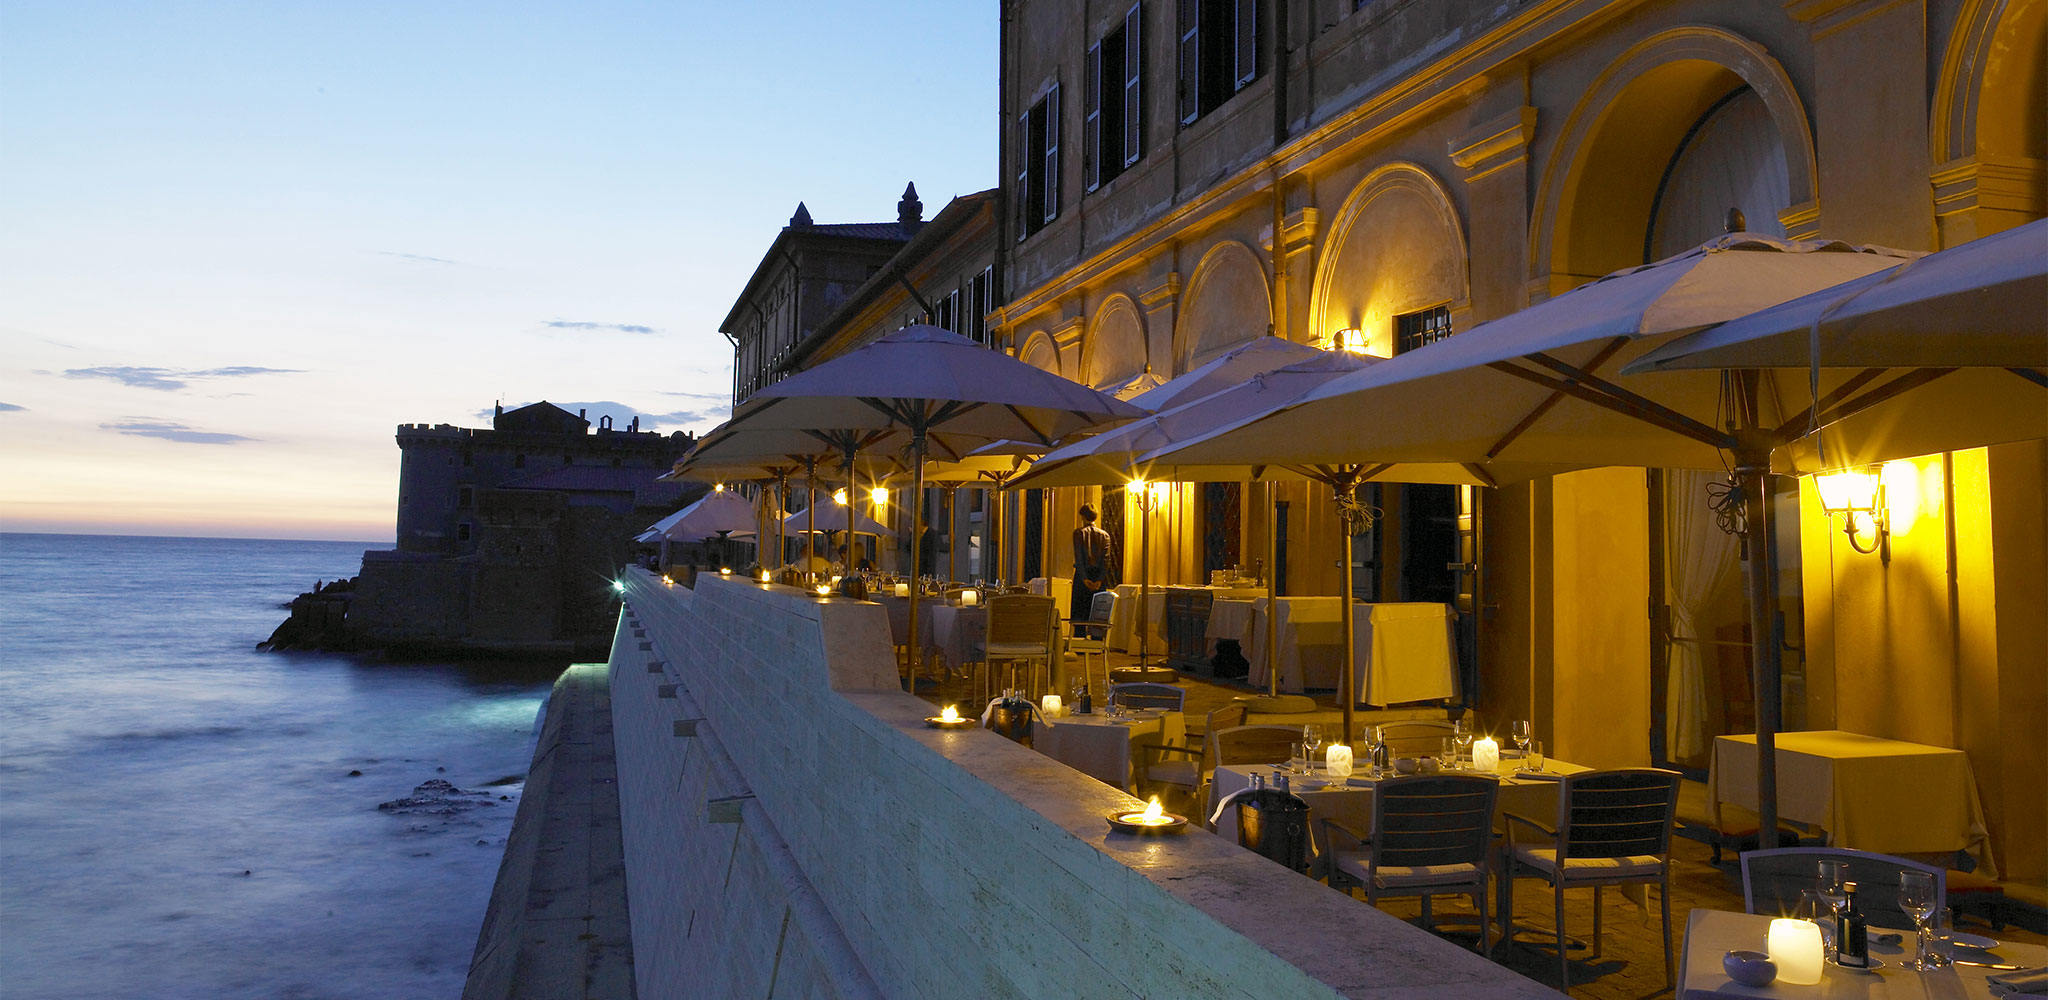 gourmet-cuisine-la-posta-vecchia-restaurant-rome-The-Cesar-Restaurant,-Terrace-Sea-View-1